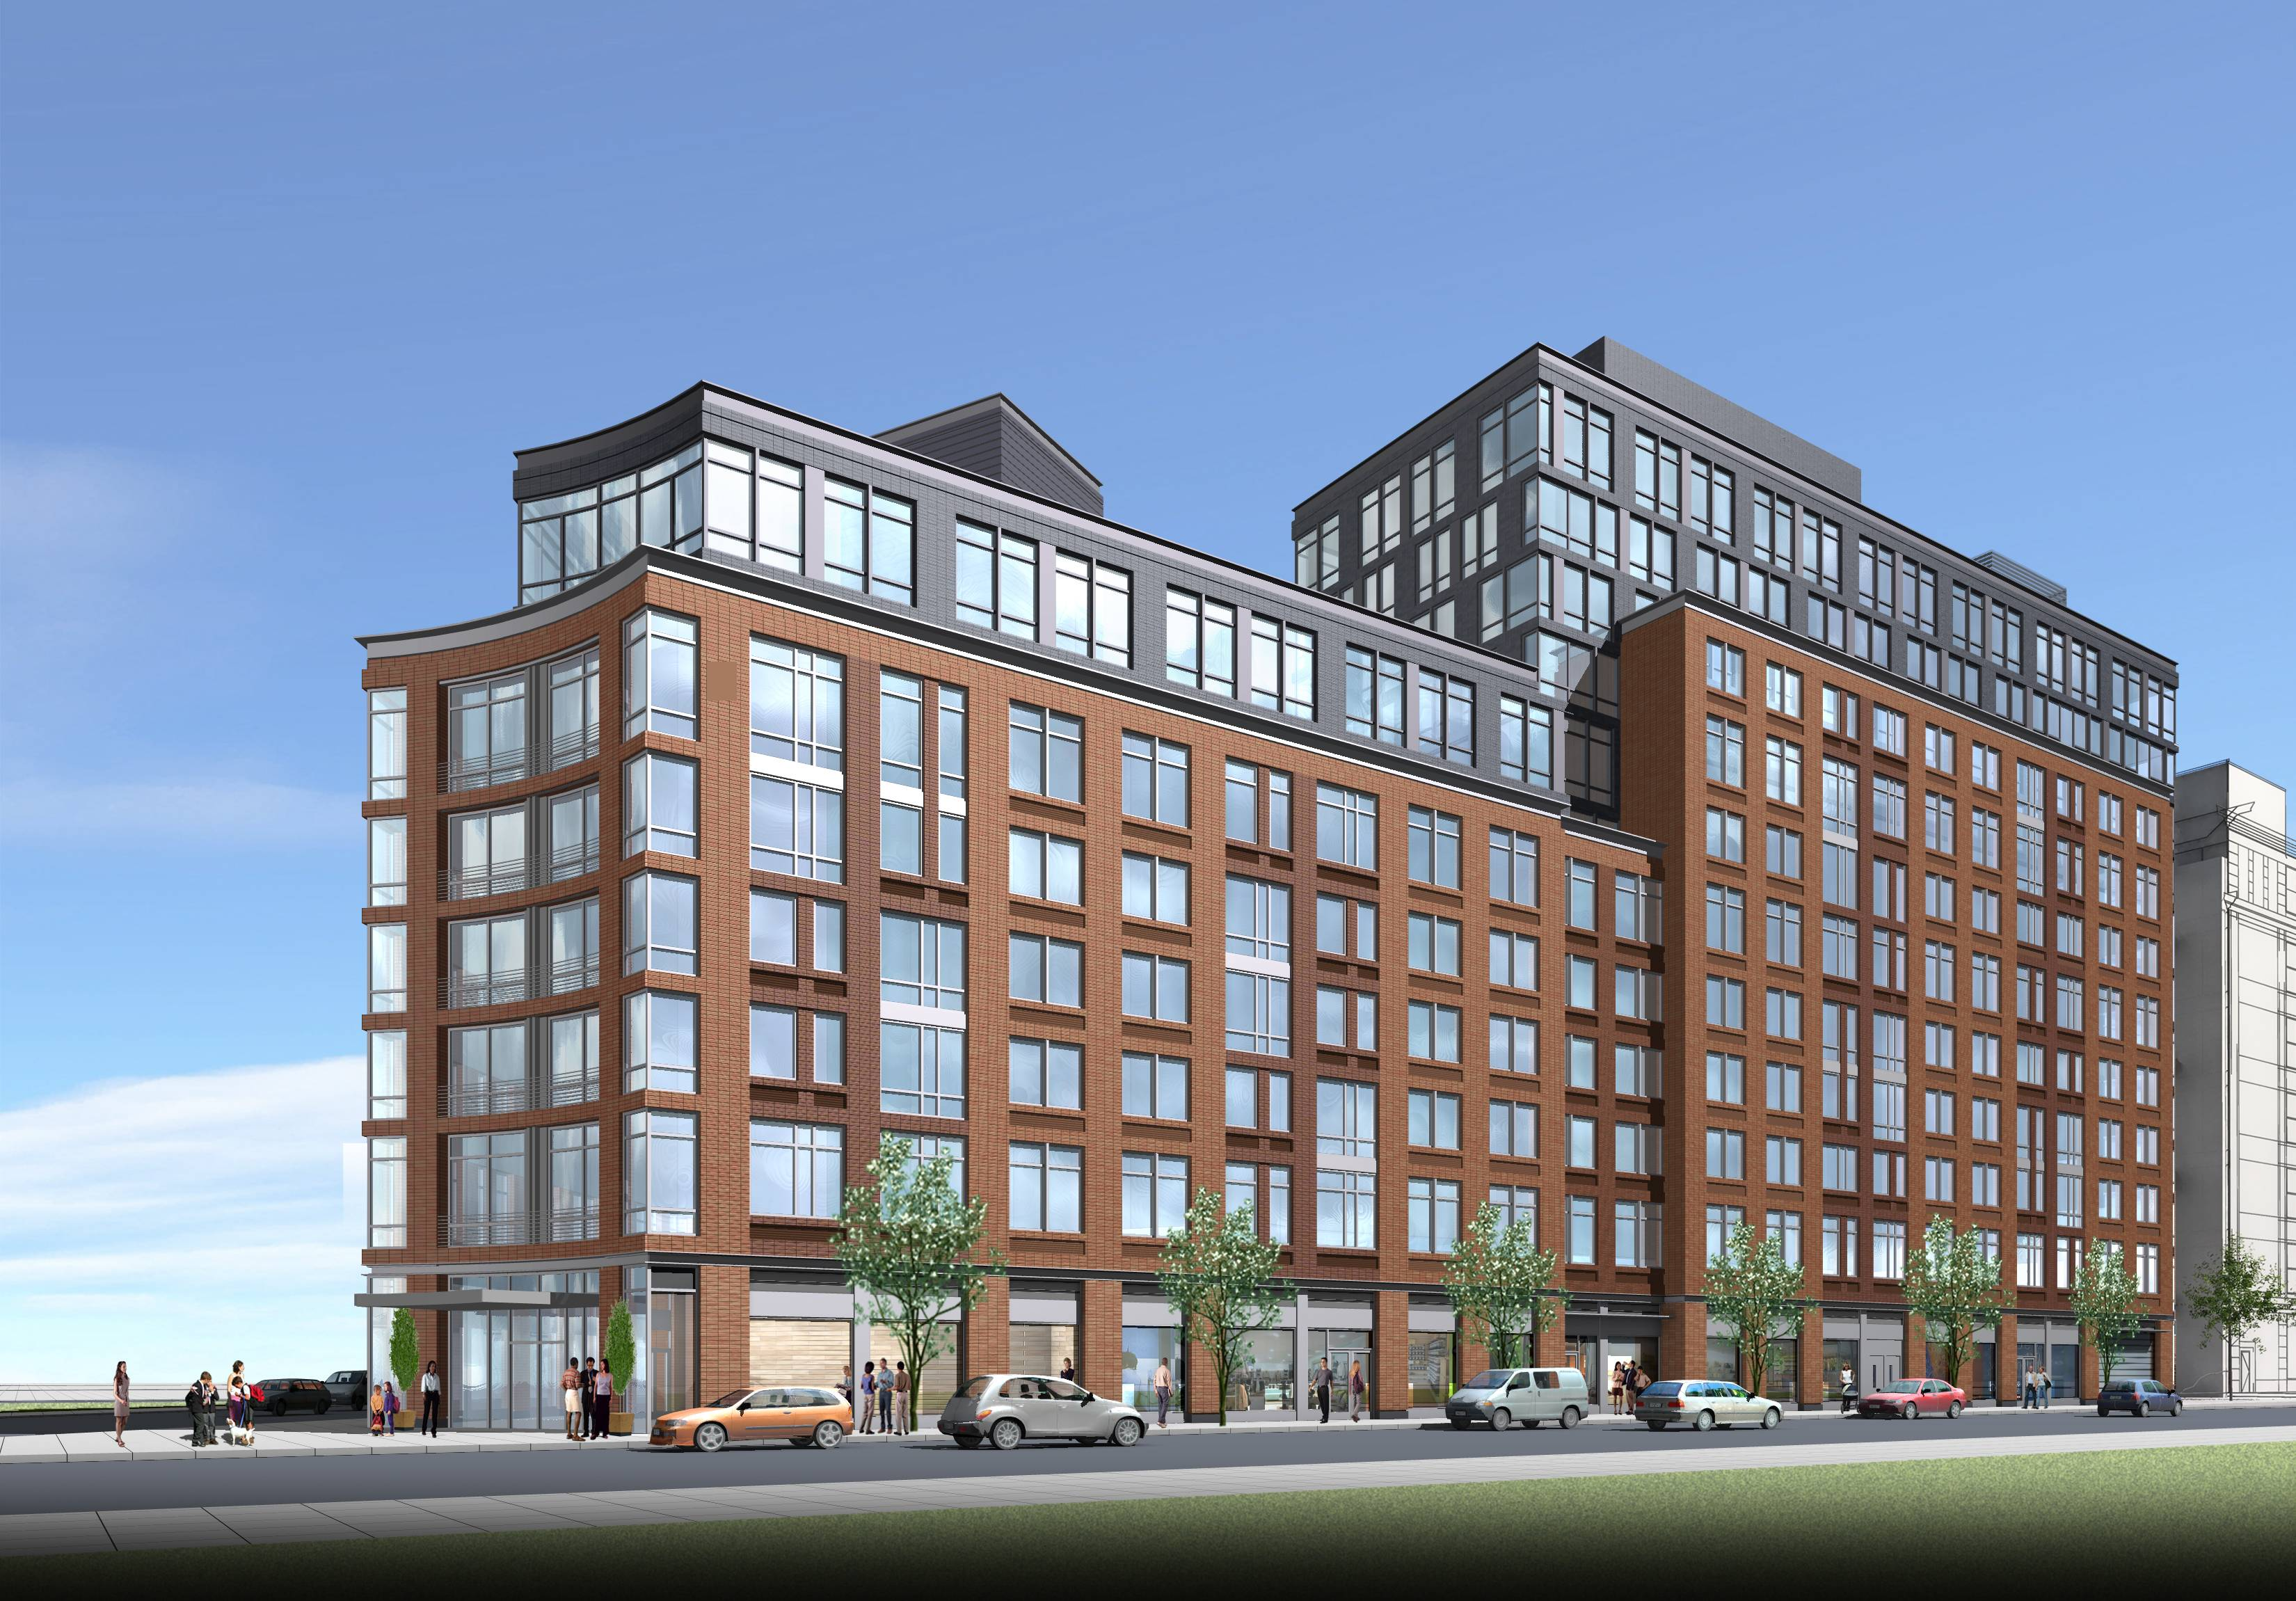 810-835 Fulton Street, rendering by Goldstein Hill & West Architects